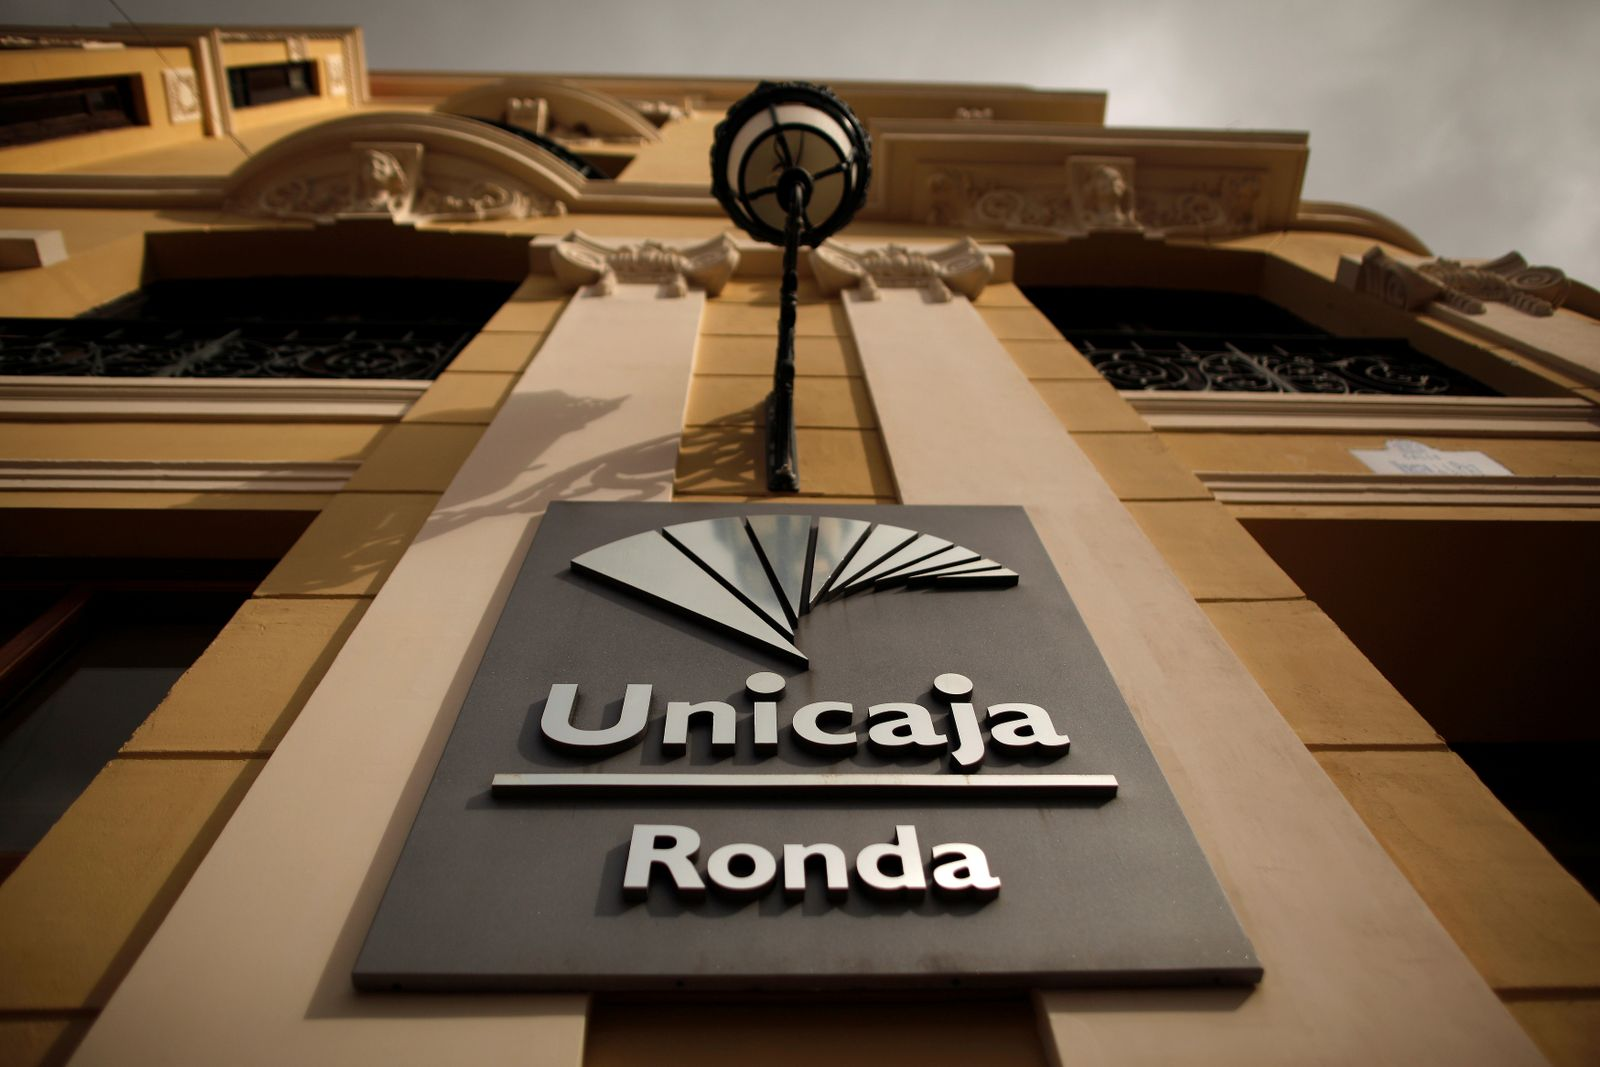 FILE PHOTO: The logo of Unicaja bank is seen on the facade of a Unicaja bank branch in downtown Ronda